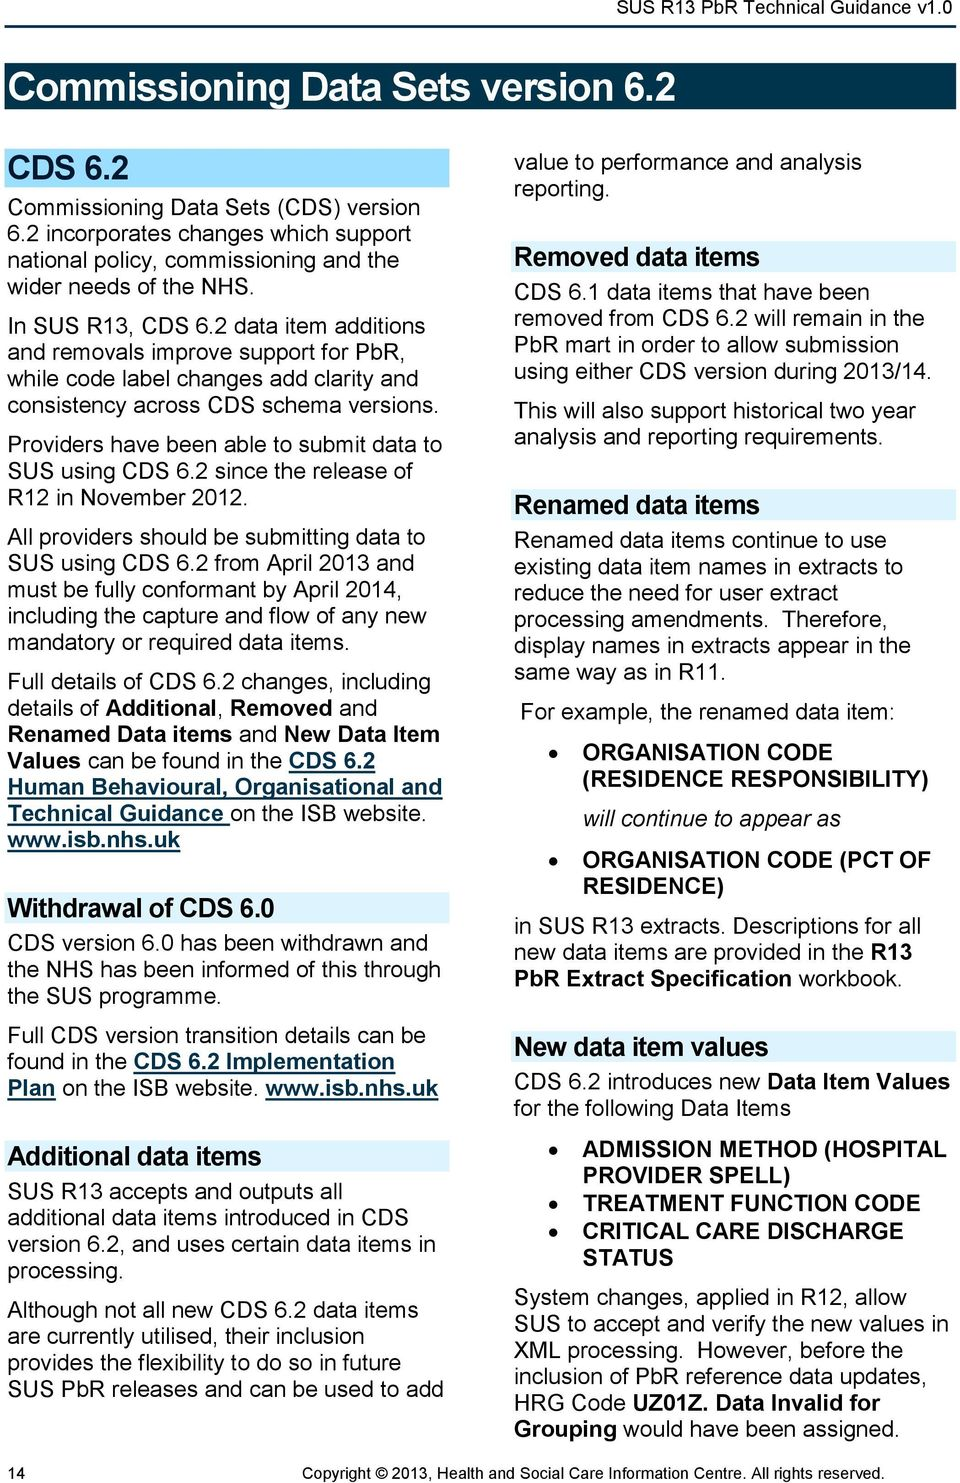 Providers have been able to submit data to SUS using CDS 6.2 since the release of R12 in November 2012. All providers should be submitting data to SUS using CDS 6.